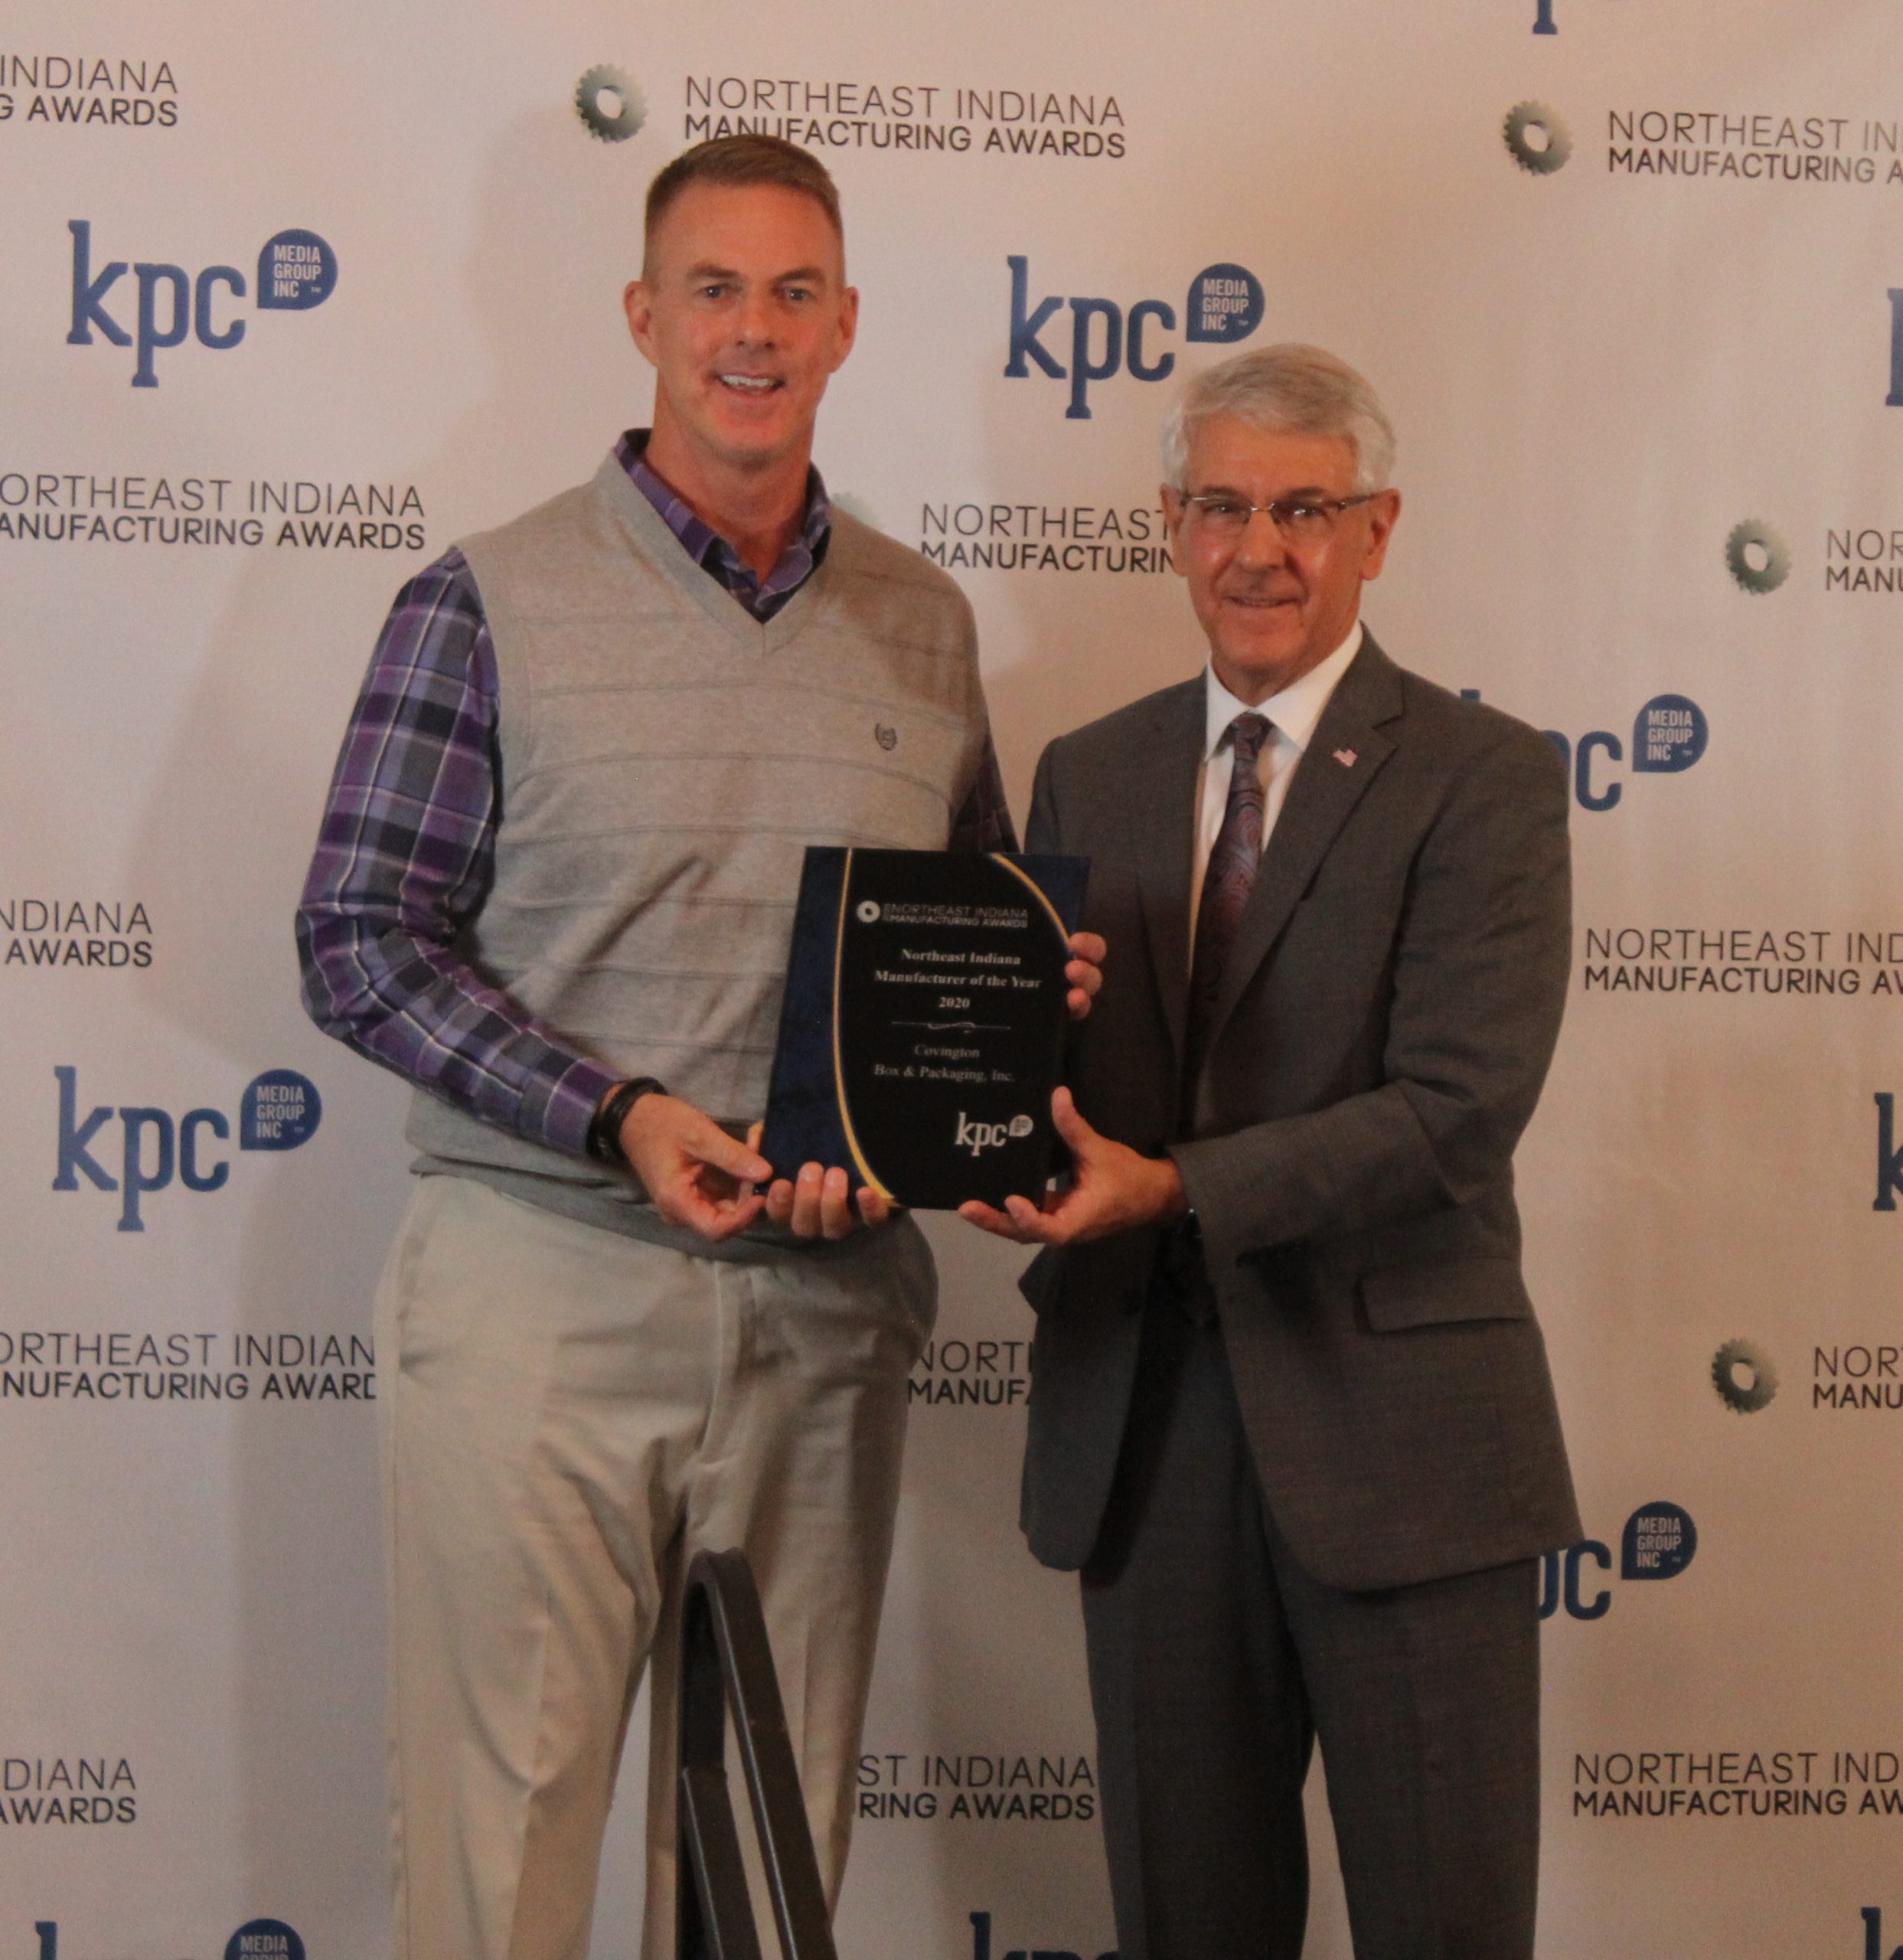 John Sampson, President and CEO of the Regional Partnership of Northeast Indiana, presenting the Northeast Indiana Manufacturer of the Year Award to  Covington Box & Packaging, Inc.